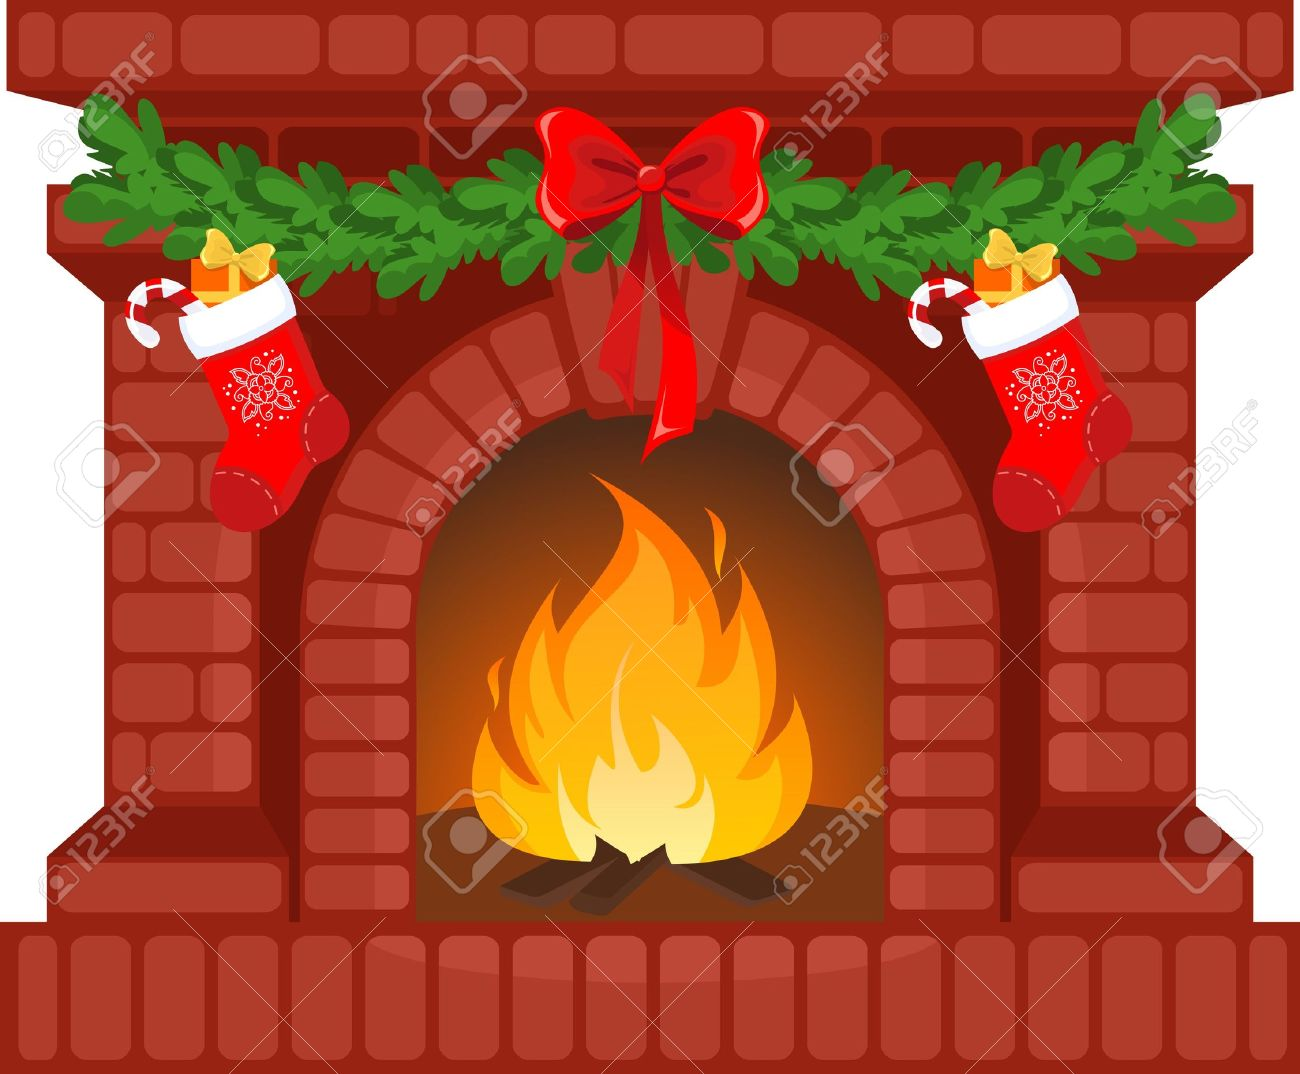 Vector illustration of Christmas fireplace with socks.